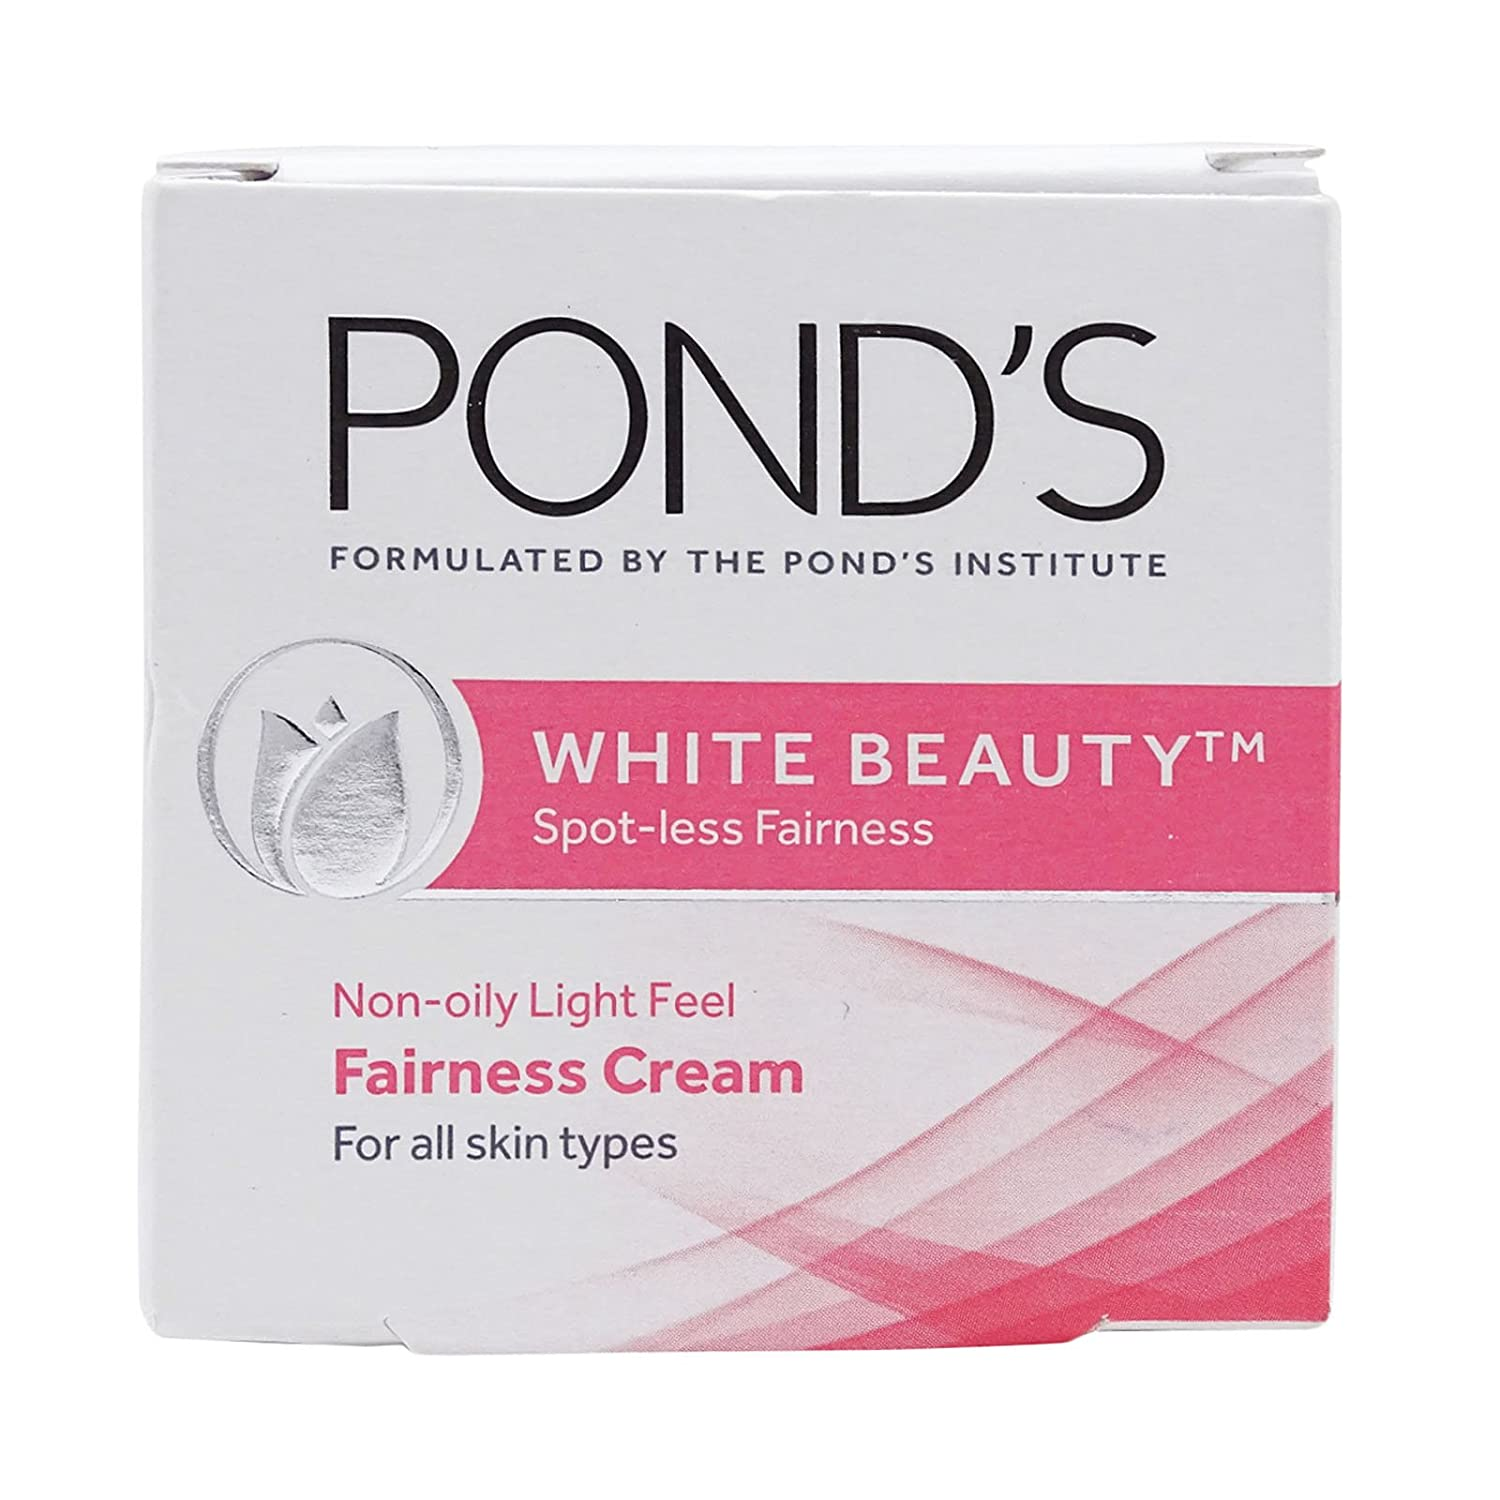 Pond's White Beauty Day Cream 23g